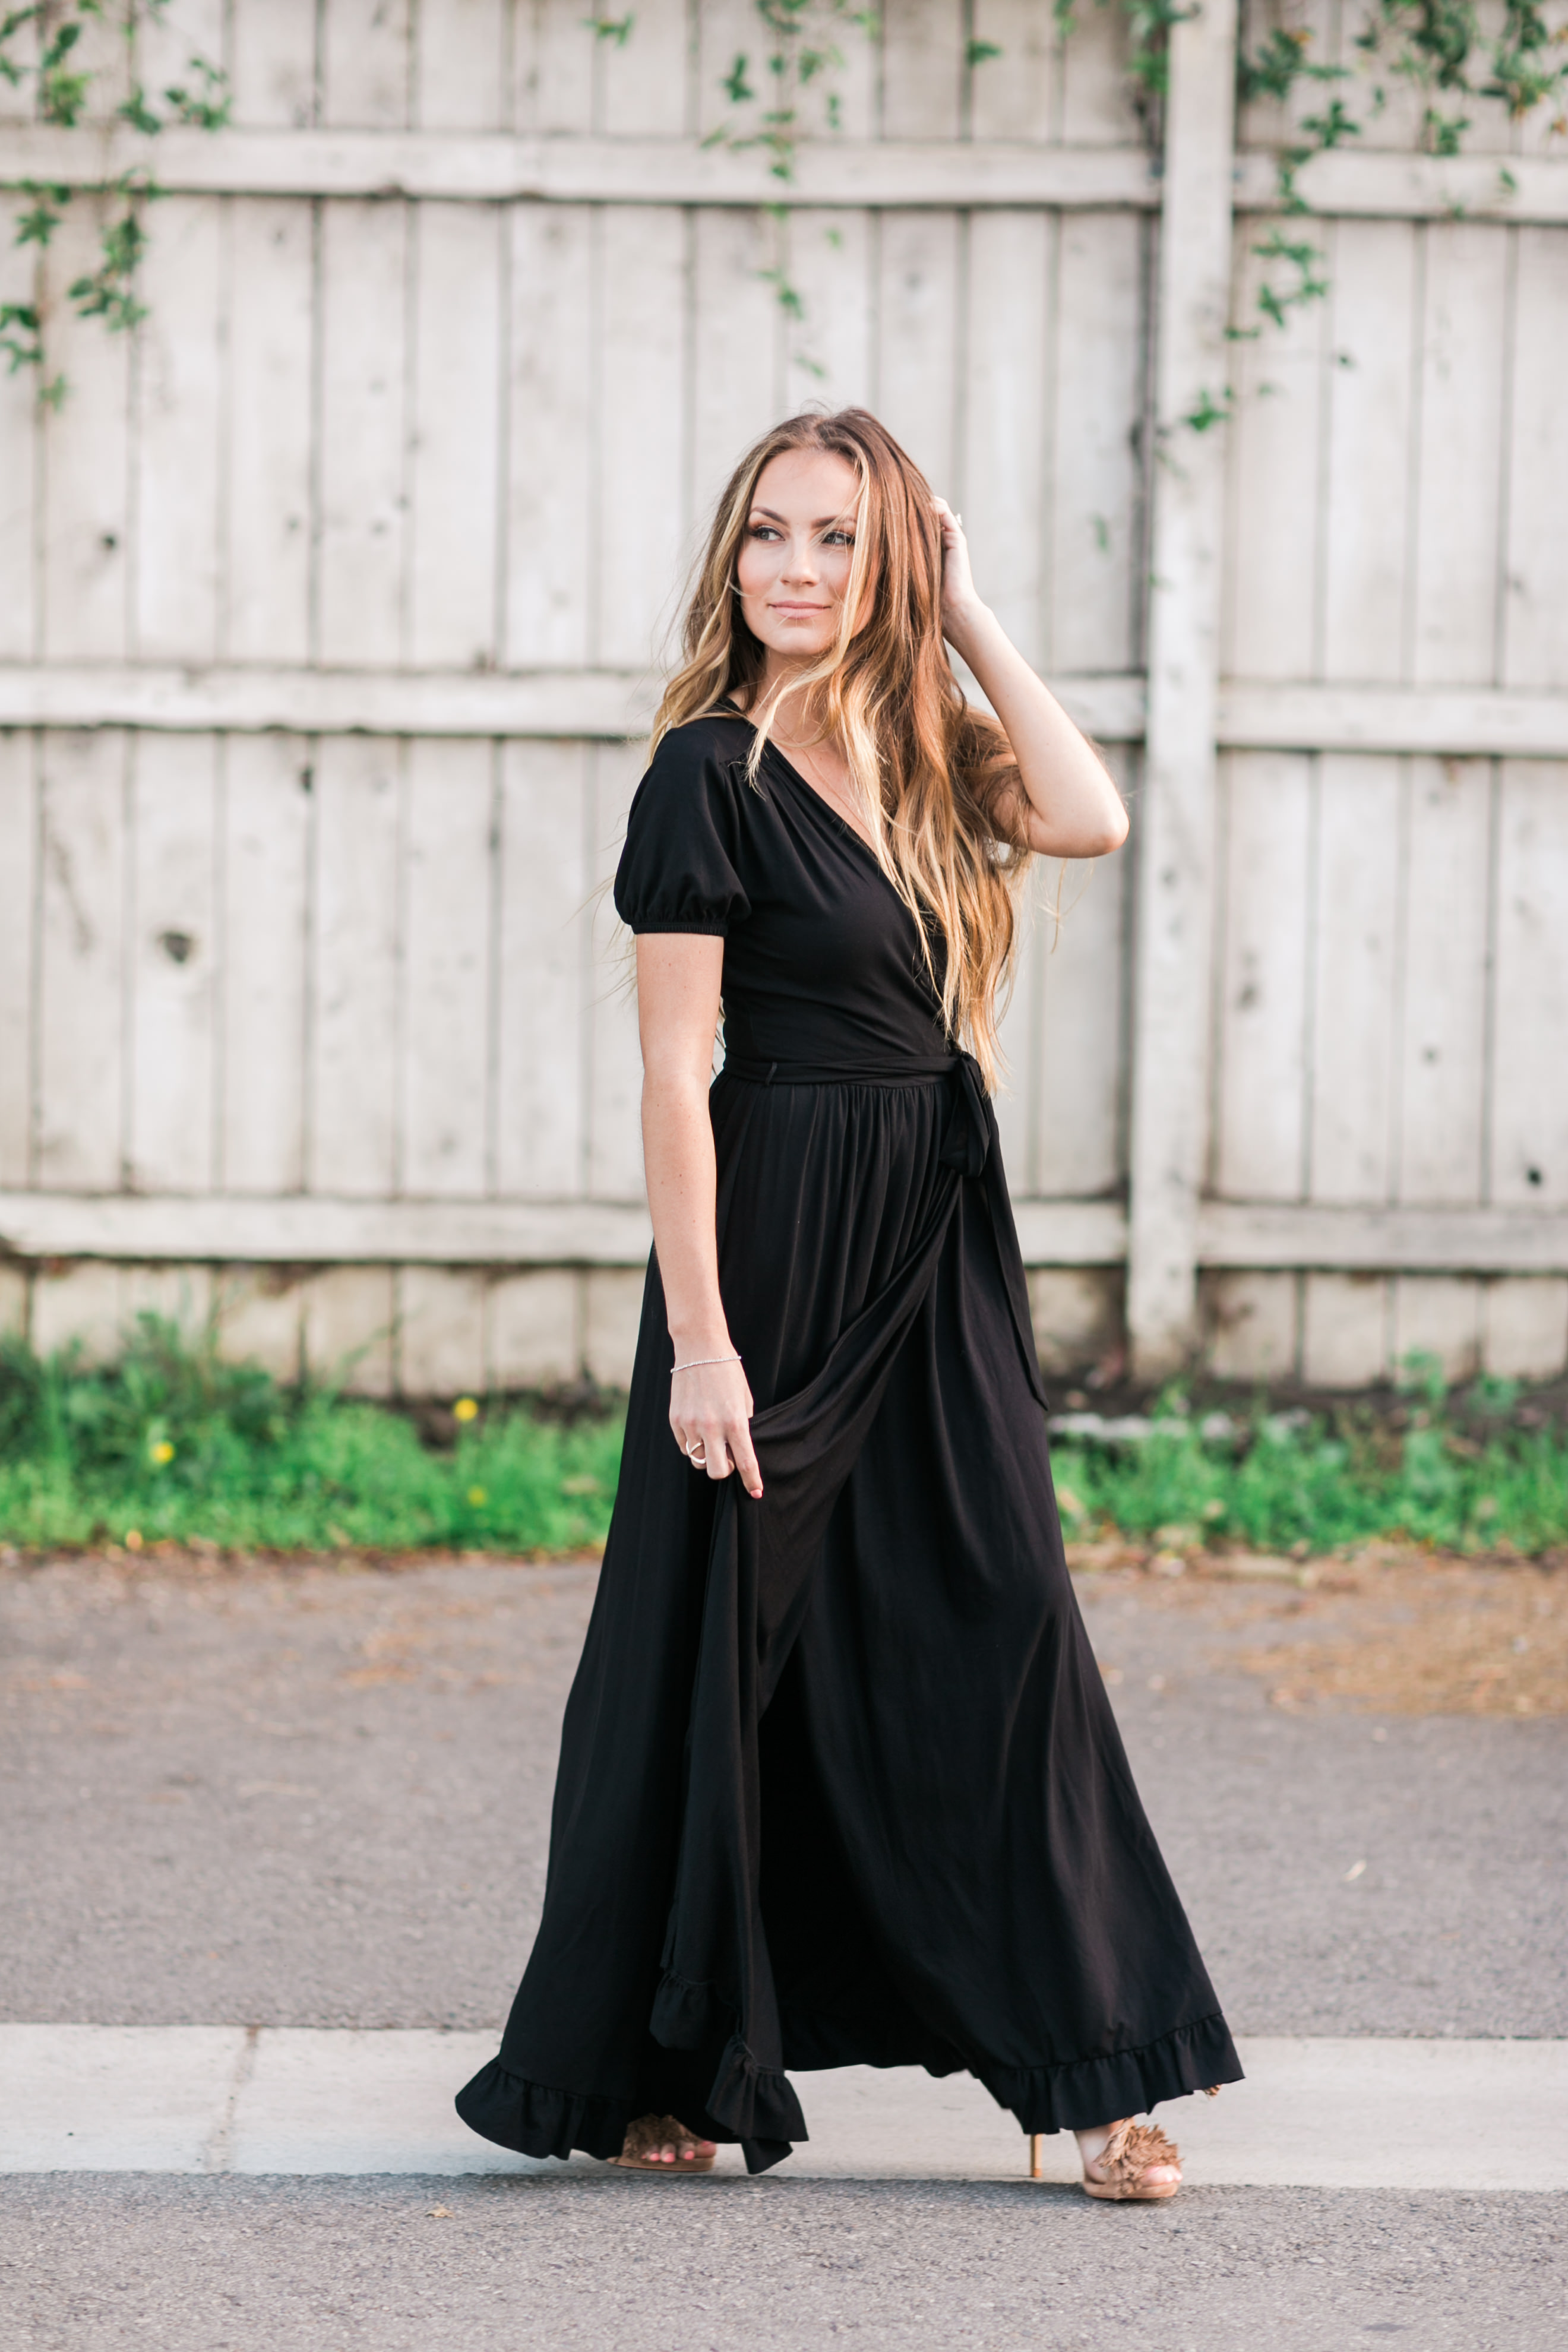 Asos wrap maxi dress and steve madden lace-up fringe sandals